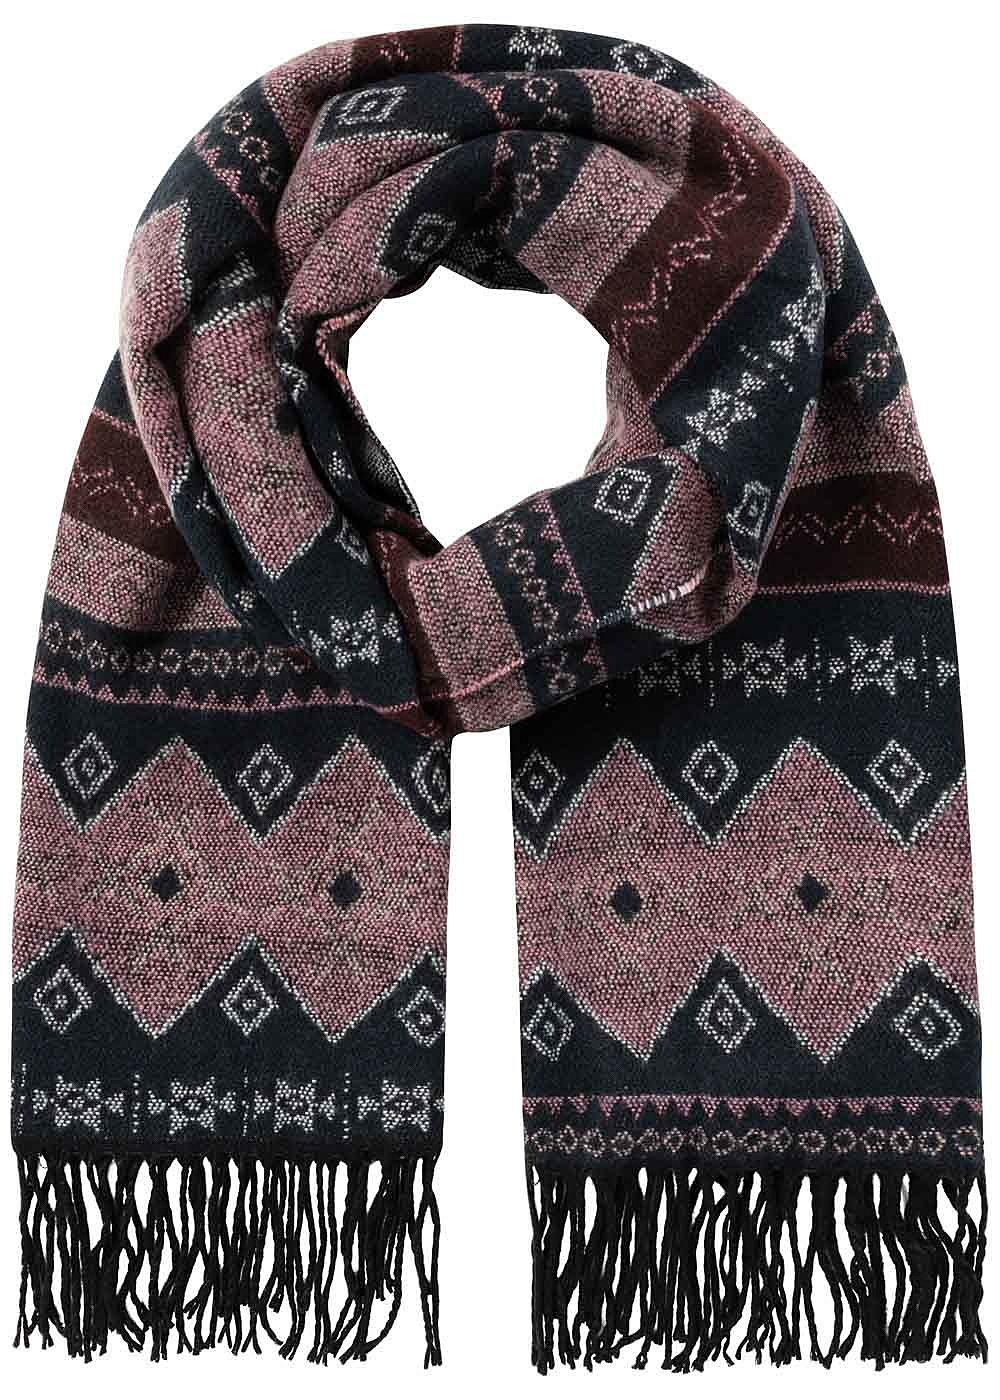 Vero Moda Damen Long Scarf Ethnic Print night sky navy blau rosa - Art.-Nr.: 19083179-OS-NY